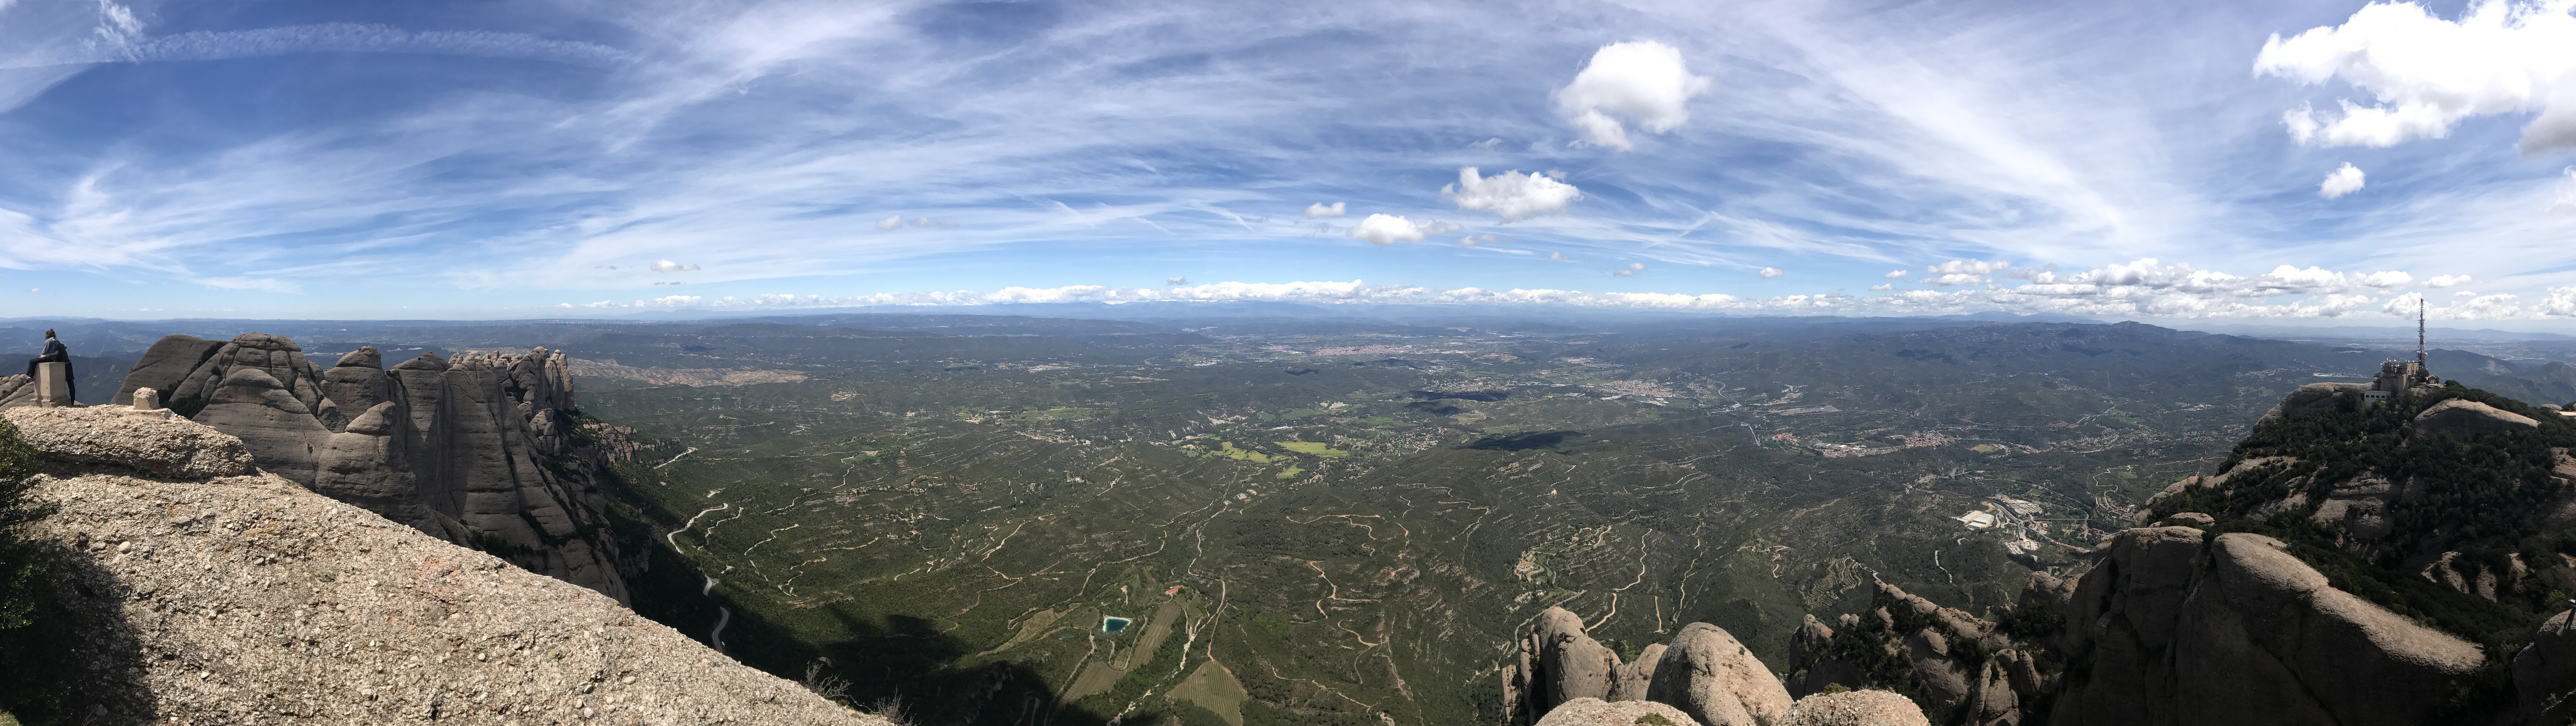 View from the peak of Montserrat